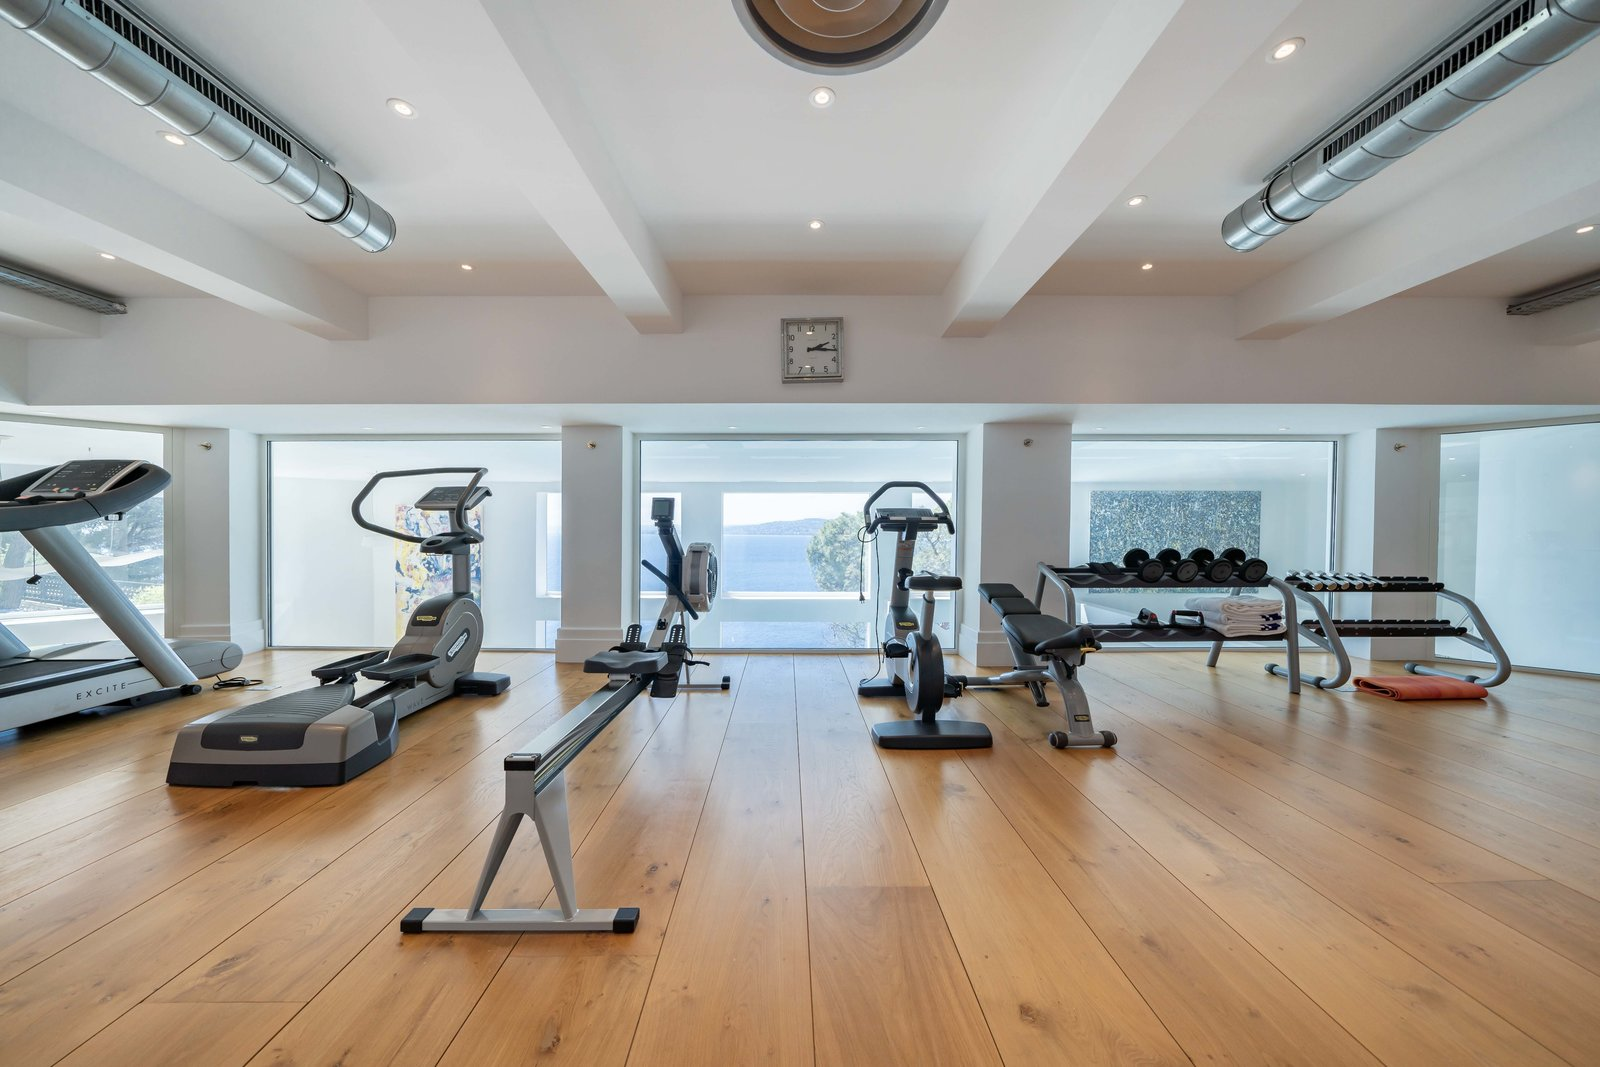 Shed & Studio A fully equipped gym and fitness room awaits on the lower level.  Photo 7 of 11 in Scottish Actor Sean Connery's Former Seaside Villa Looks Like the Perfect Place to Quarantine